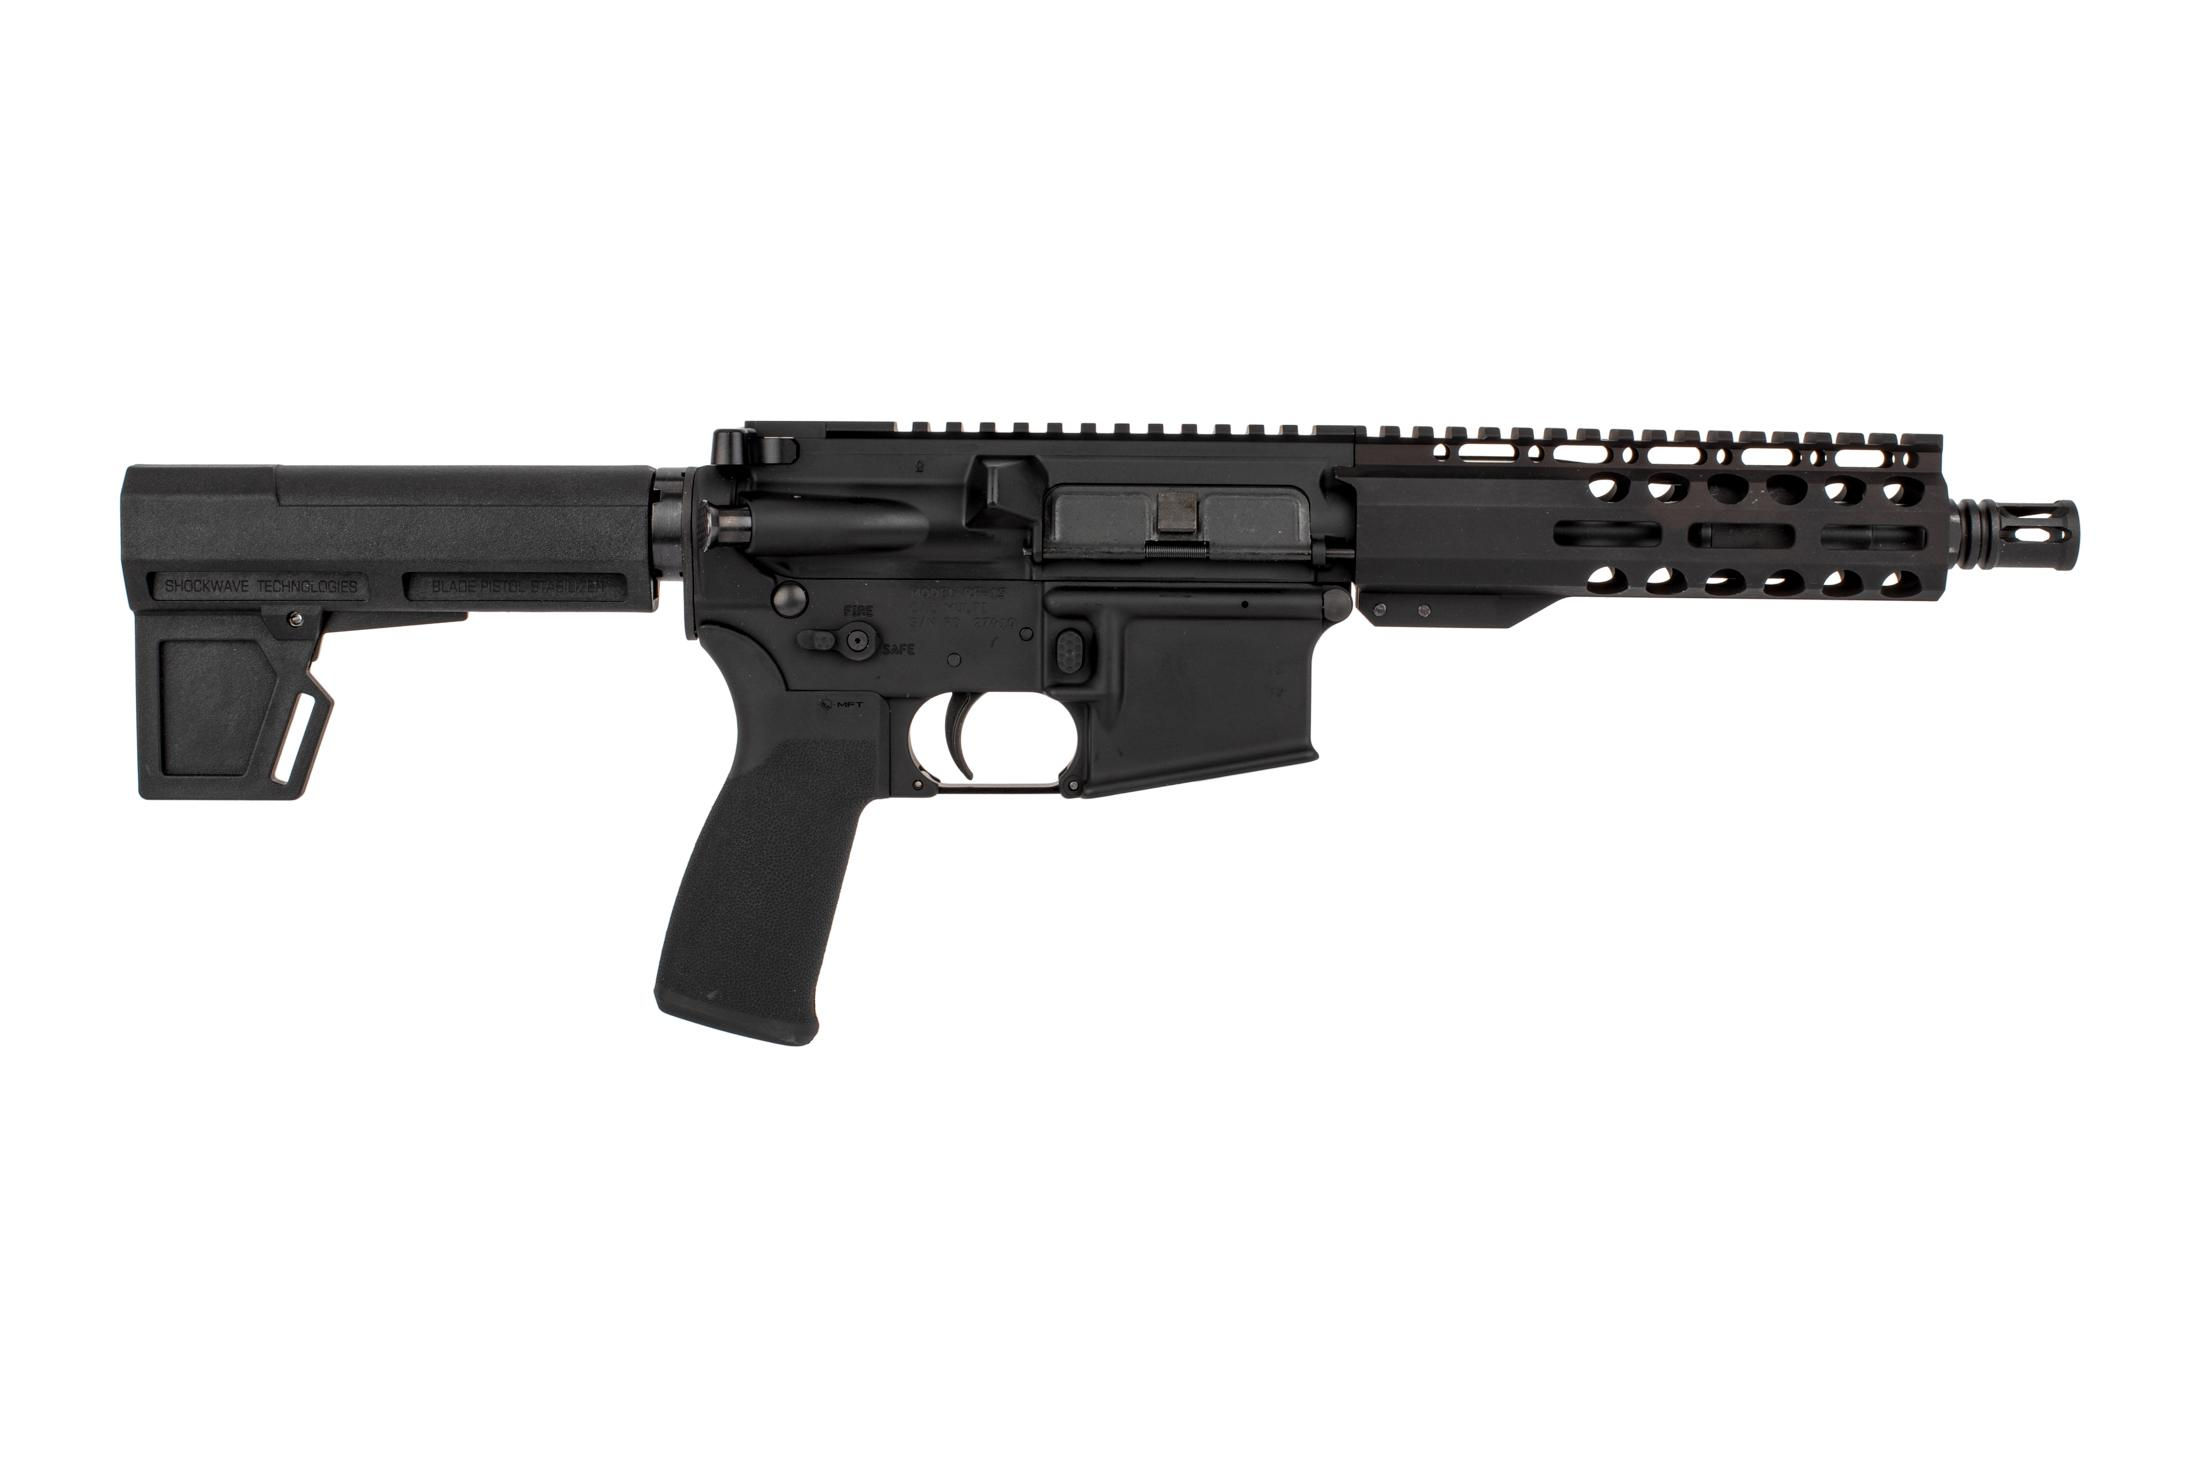 "Radical Firearms 7.5 Primary Arms exclusive 5.56 NATO AR-15 pistol with M4 contour barrel, 7"" M-LOK rail, and Shockwave 2M brace."